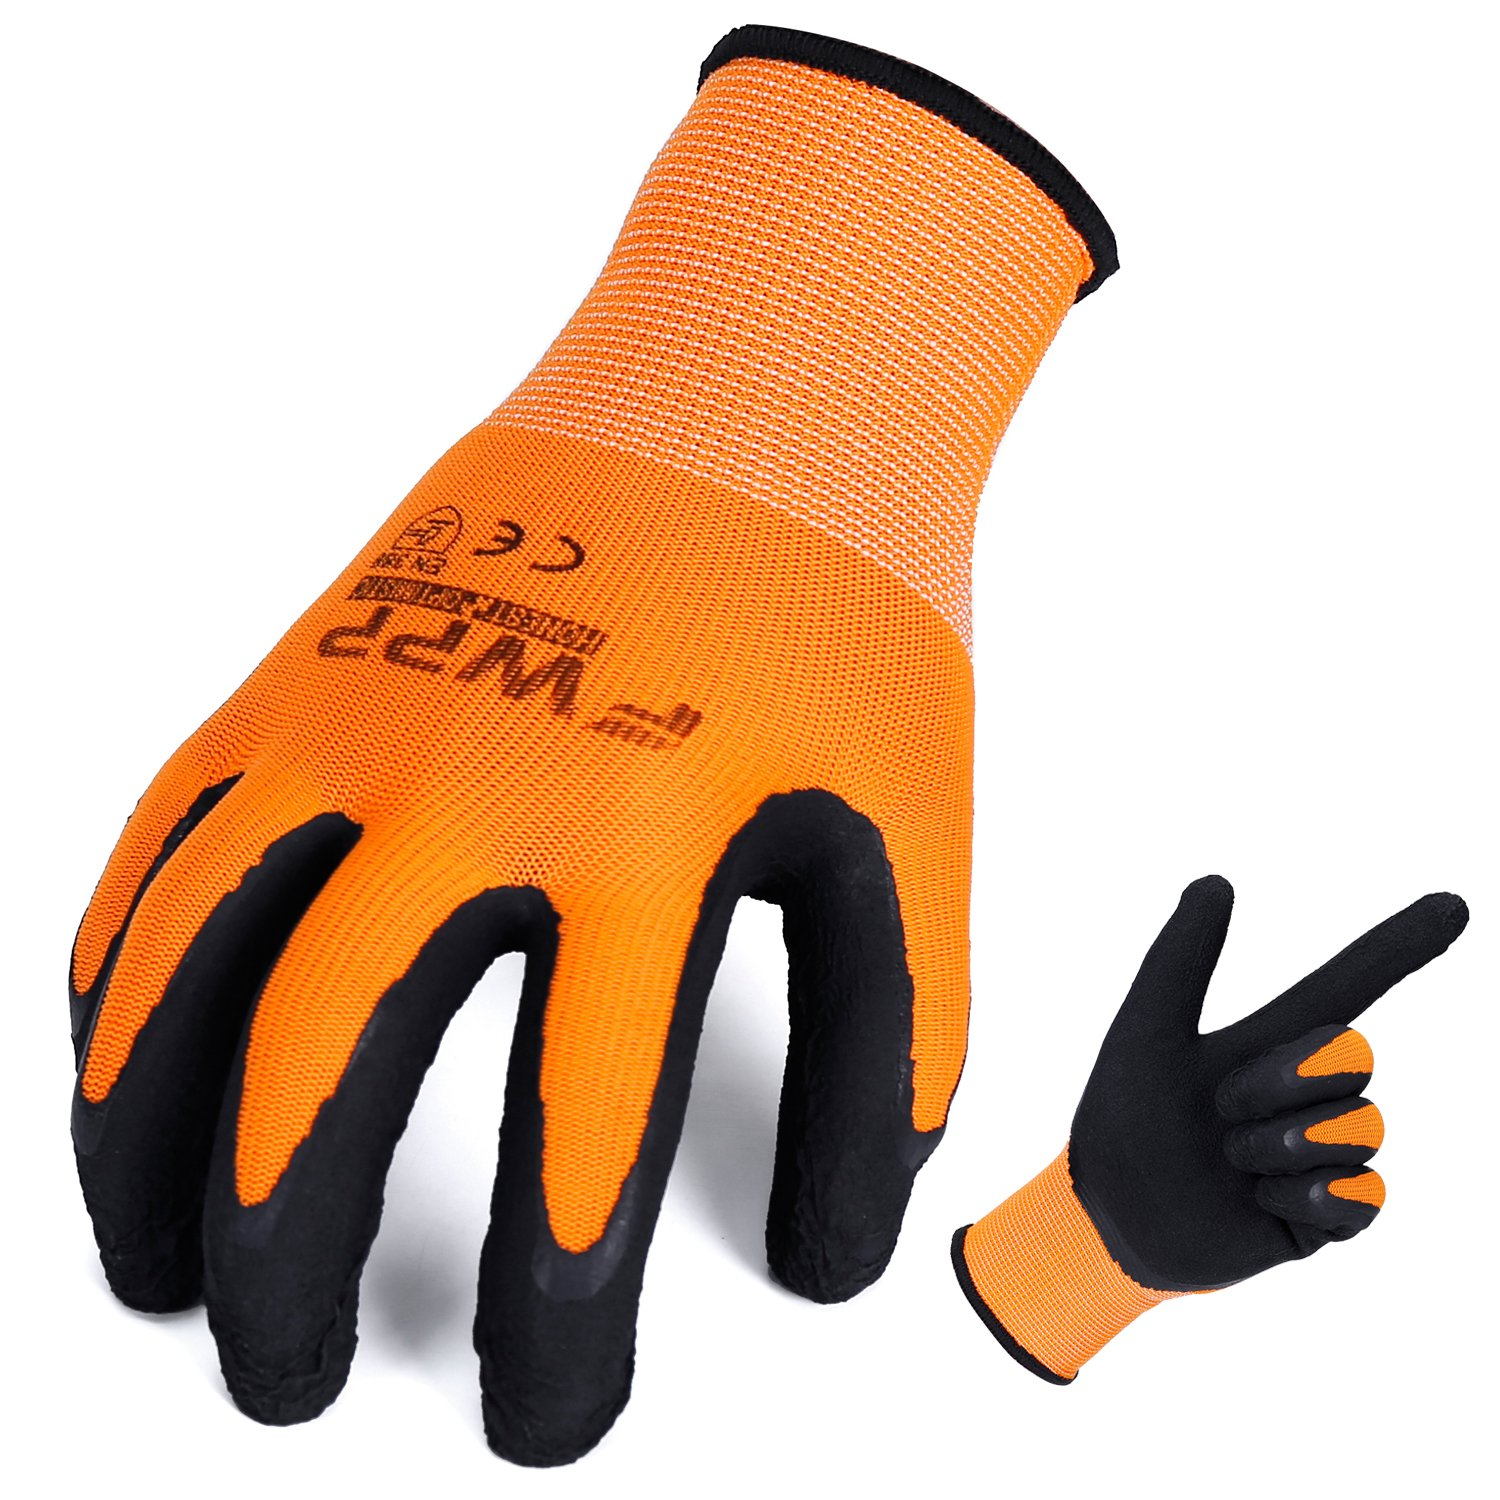 FWPP High Visibility Nylon Latex Foam Coated Work Gloves,Breathable Soft Wearproof Non-slip Comfortable Safety Protective Glove Pack of 6Pairs Large Fluorescence Orange